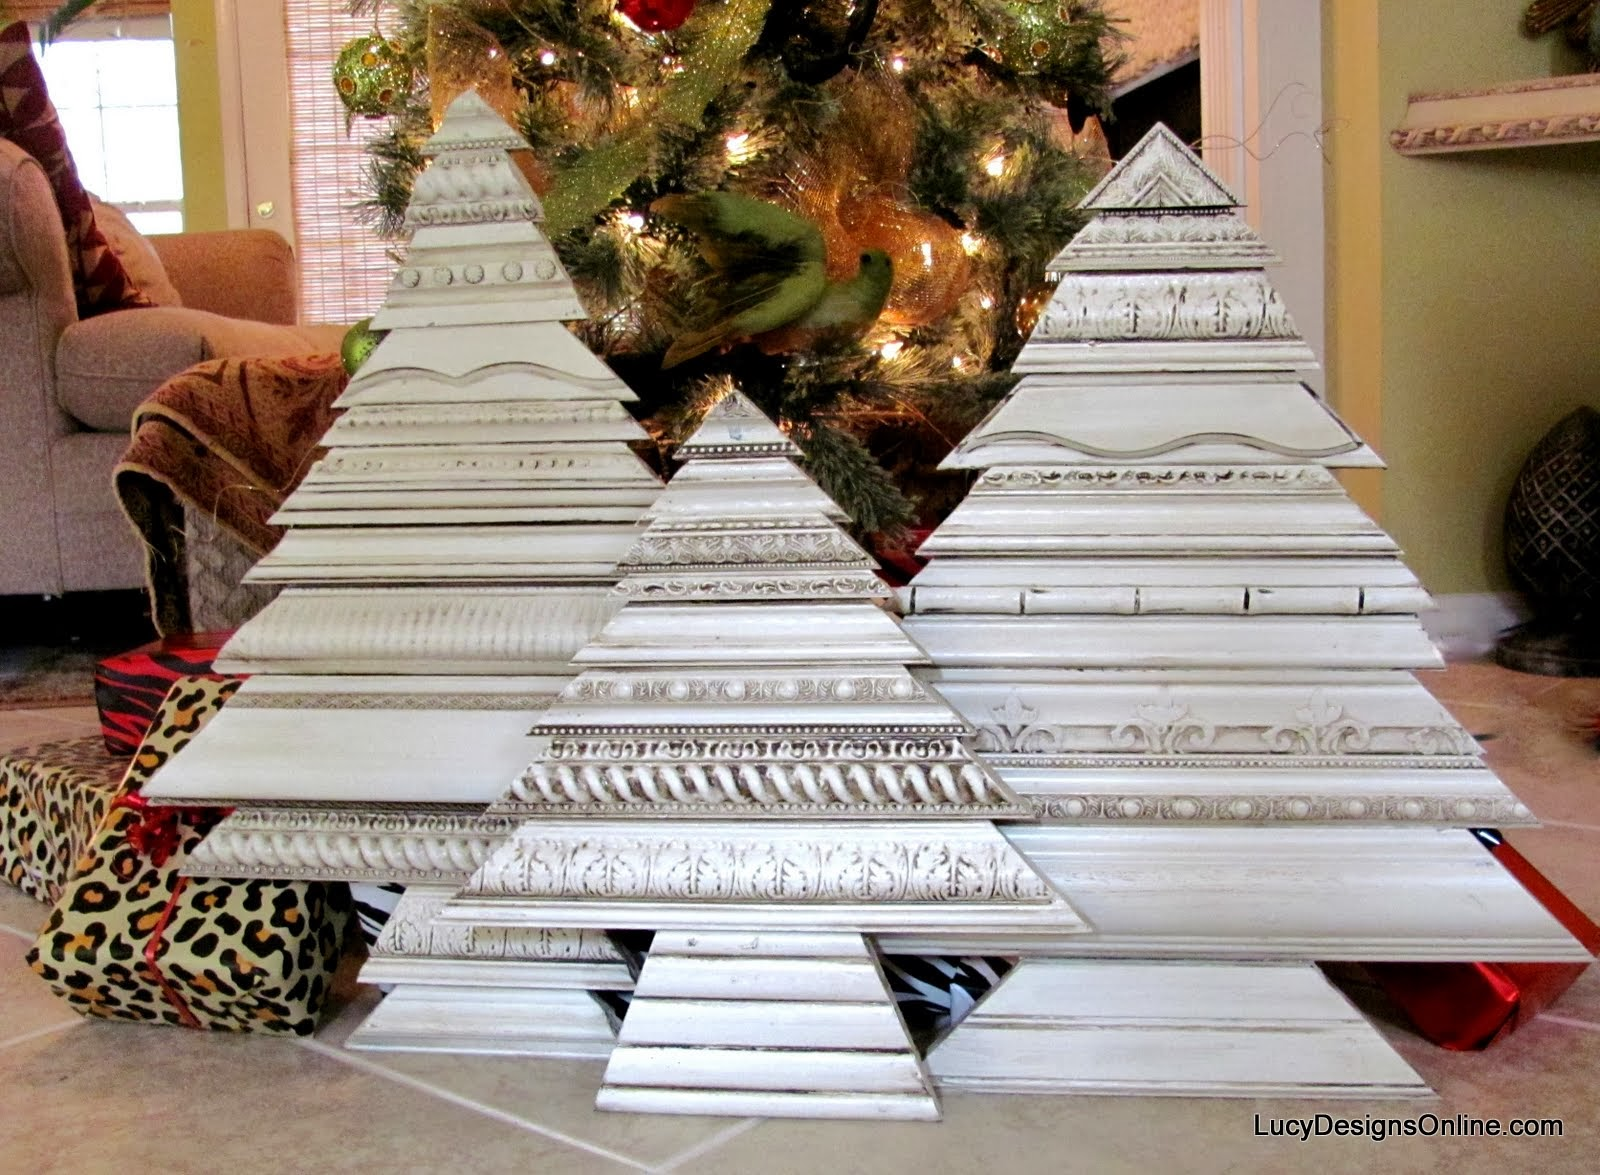 Molding Christmas Tree Sculptures Using Re-Purposed, Recycled ...